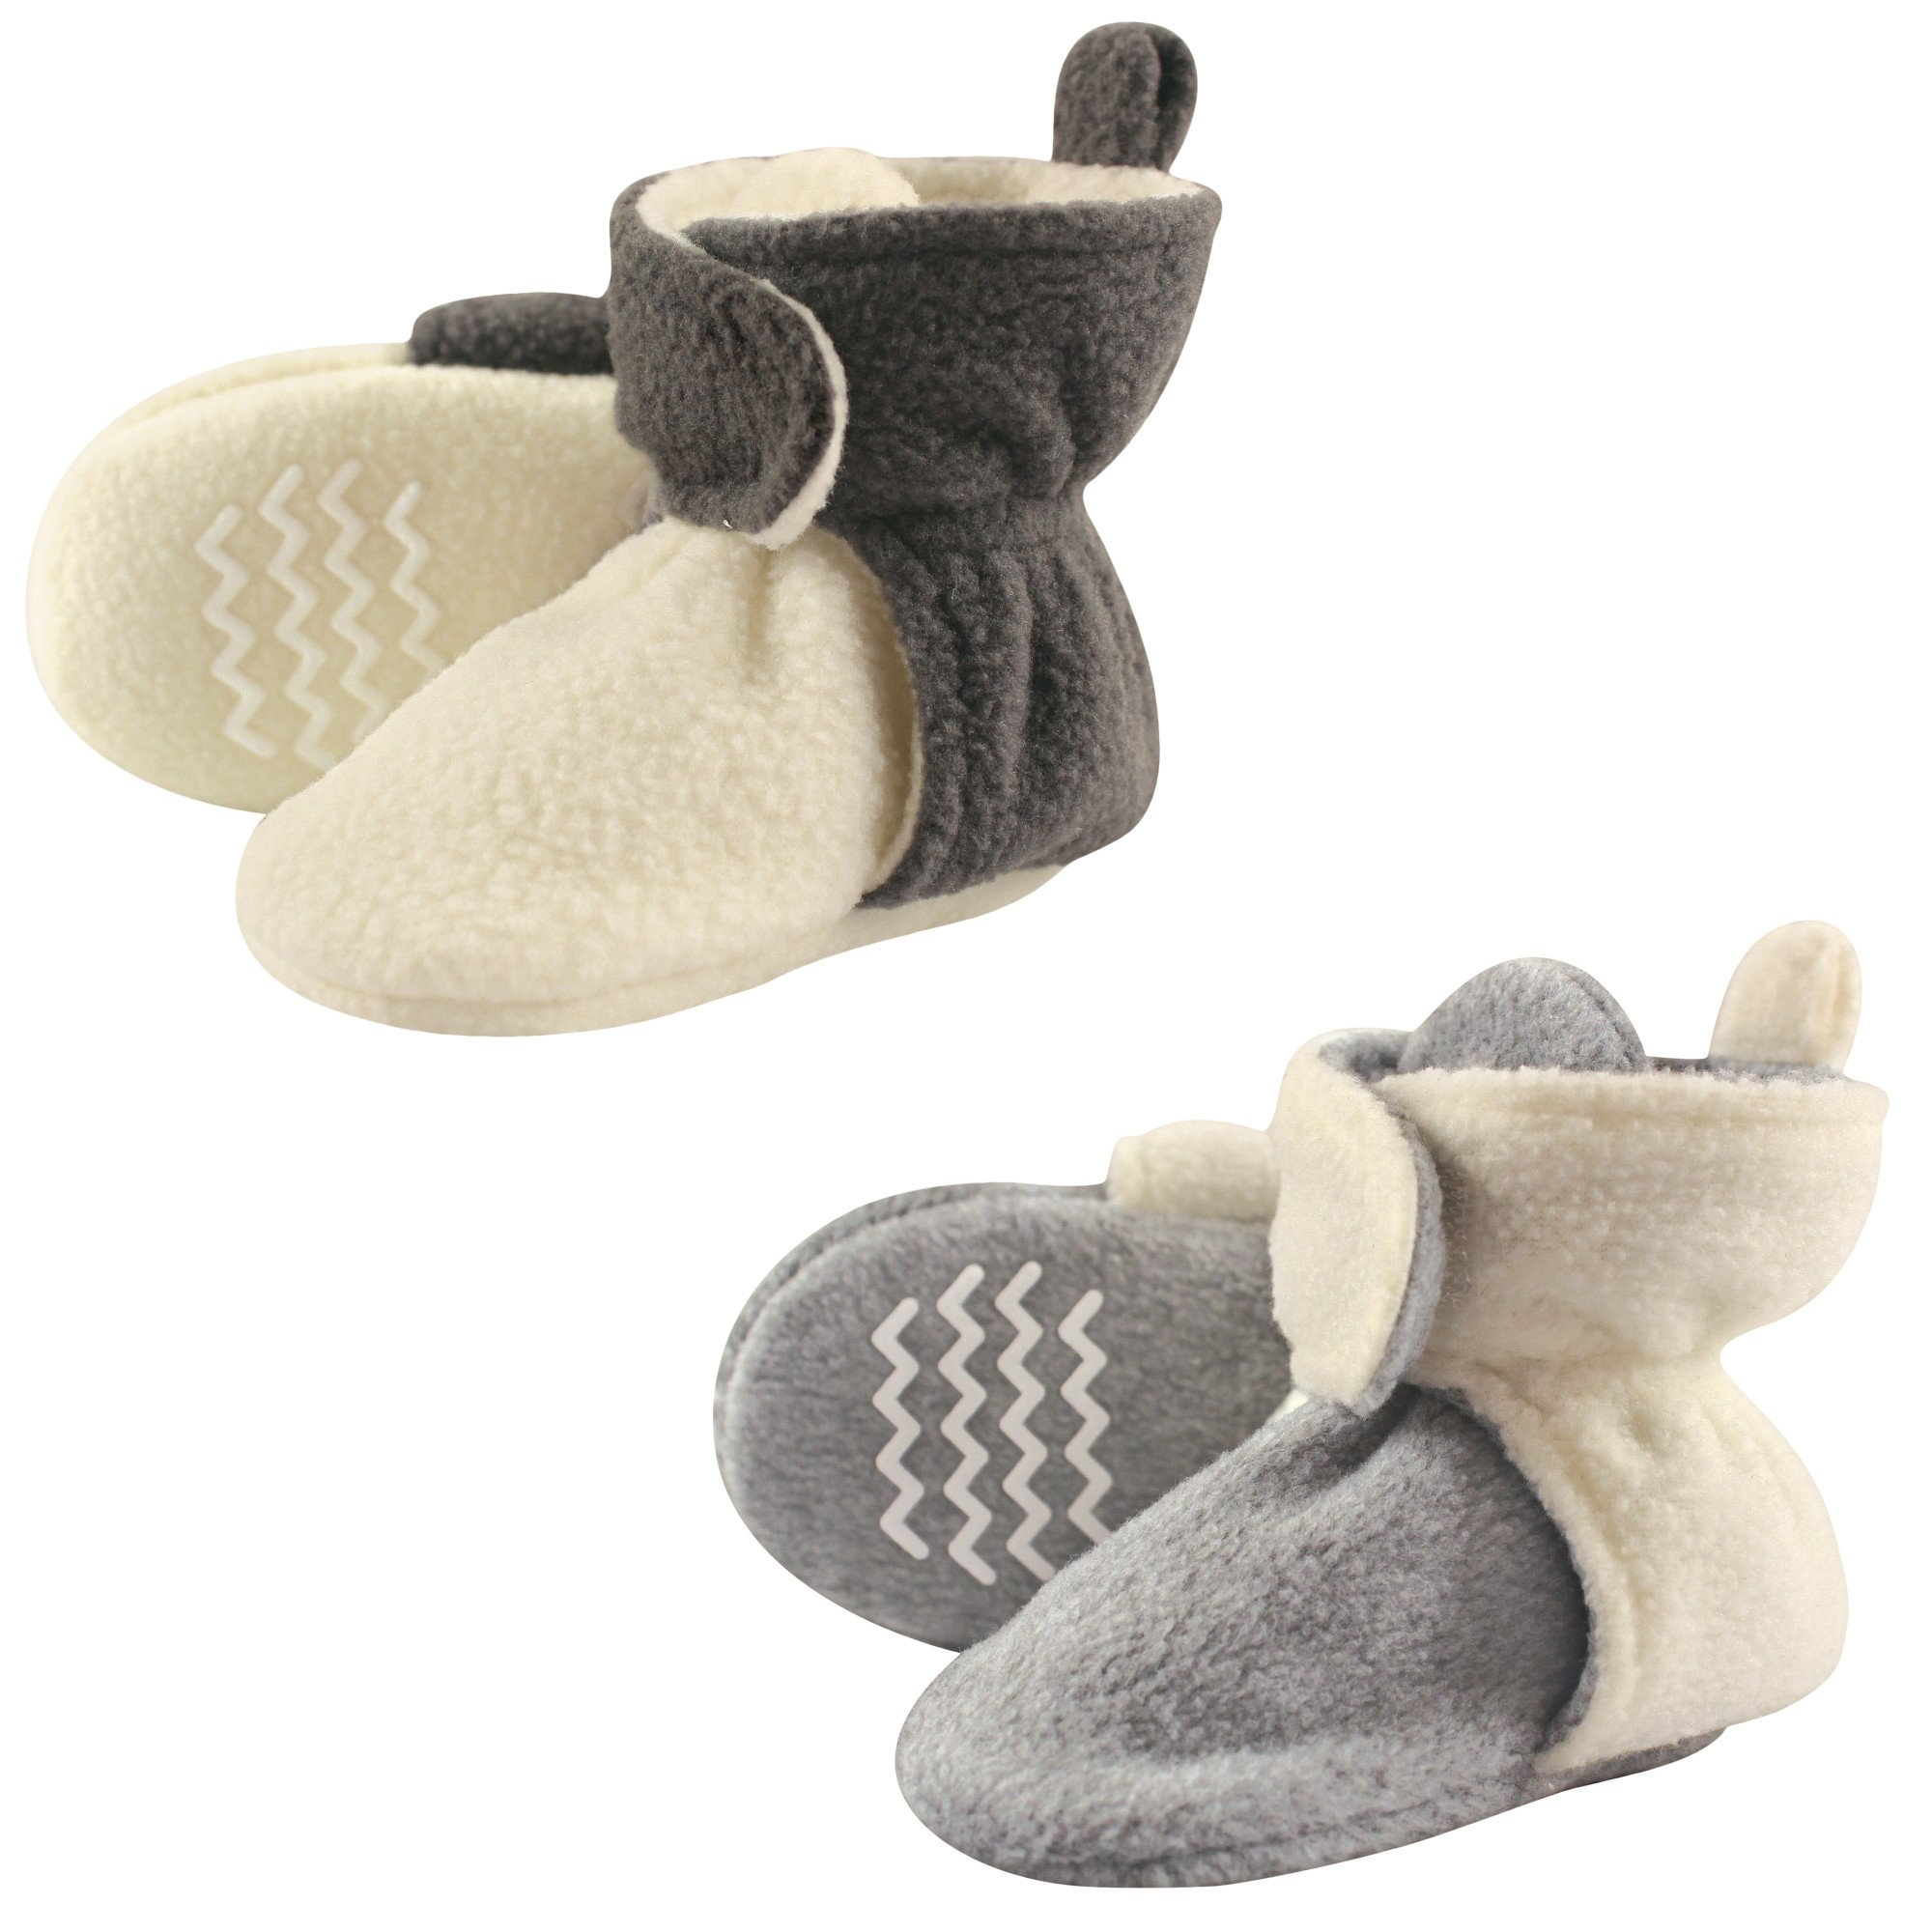 Hudson Baby Cozy Fleece Booties with Non Skid Bottom, 2 Pack, Cream/Gray, 0-6 Months